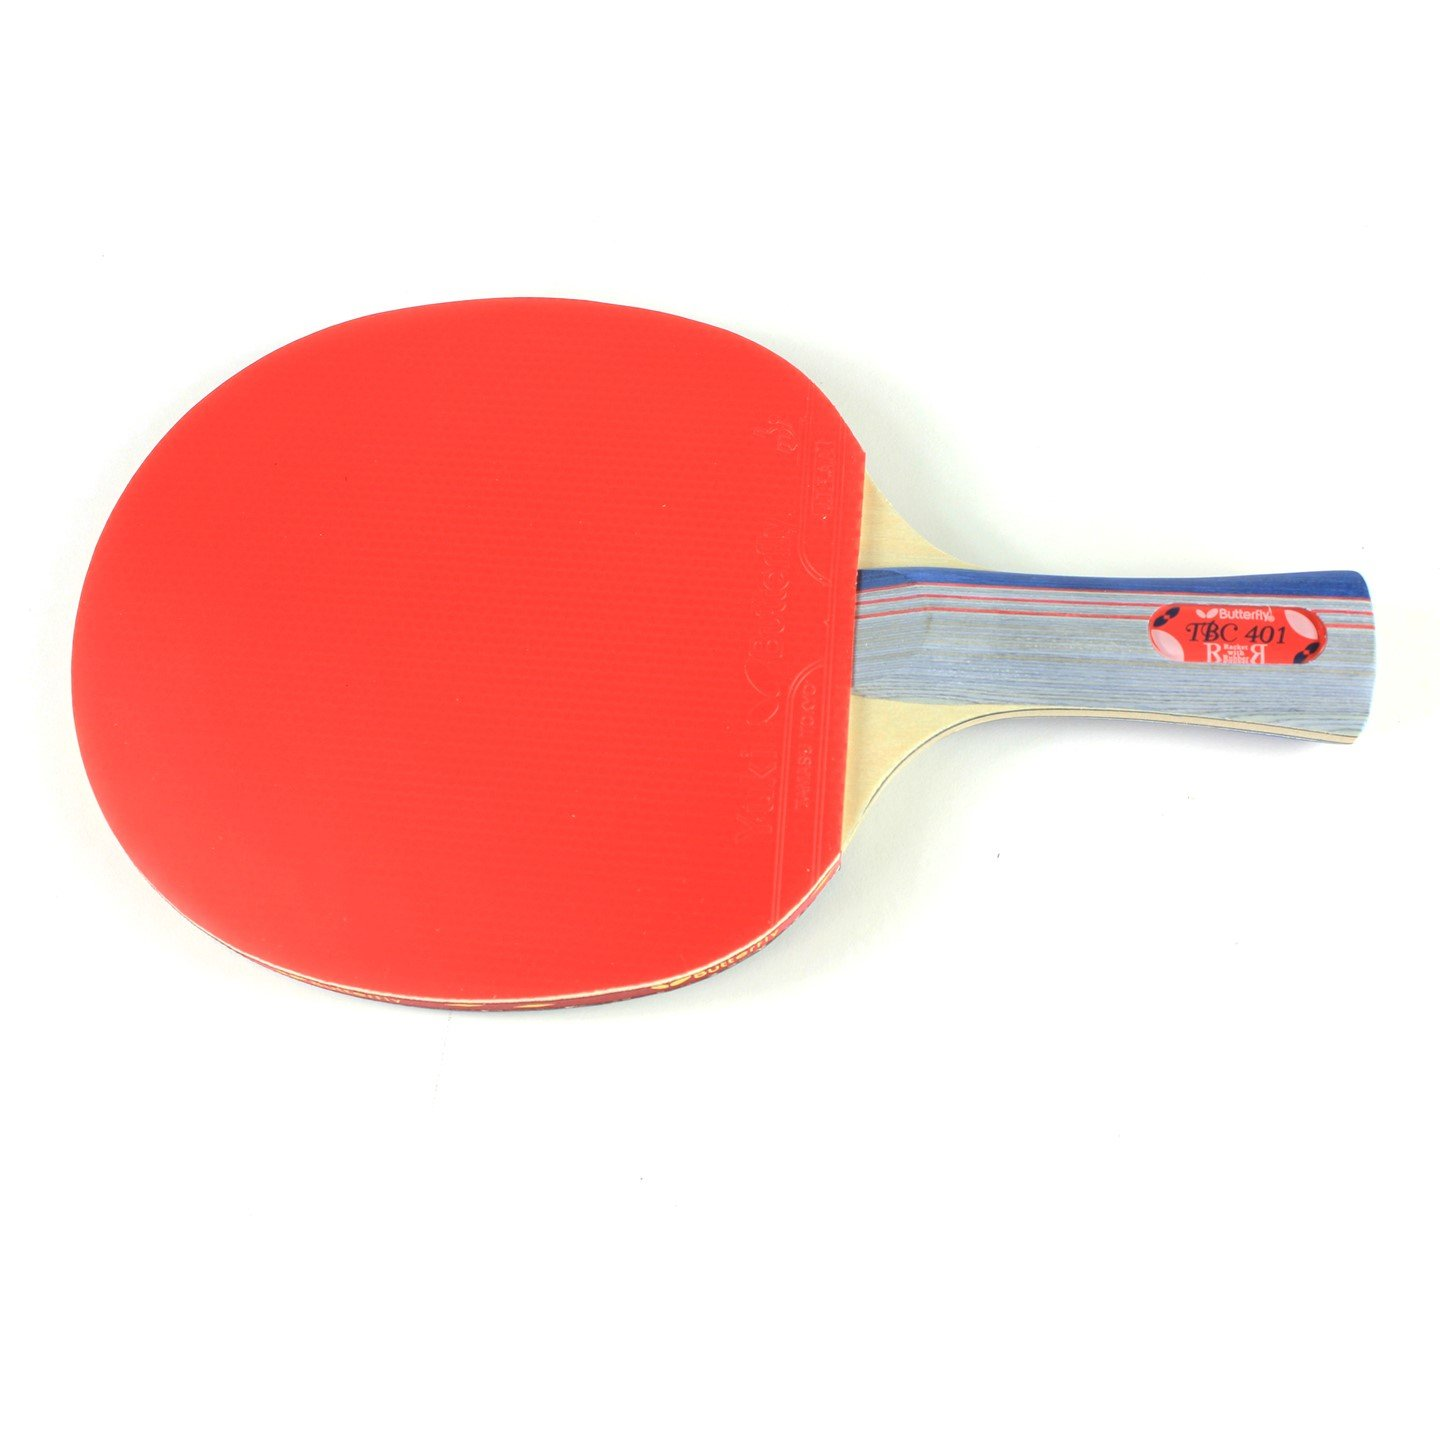 Butterfly 401 Table Tennis Racket Set – 1 Ping Pong Paddle 1 Ping Pong Paddle Case – ITTF Approved Table Tennis Paddle – Ships In Ping Pong Racket Gift Box